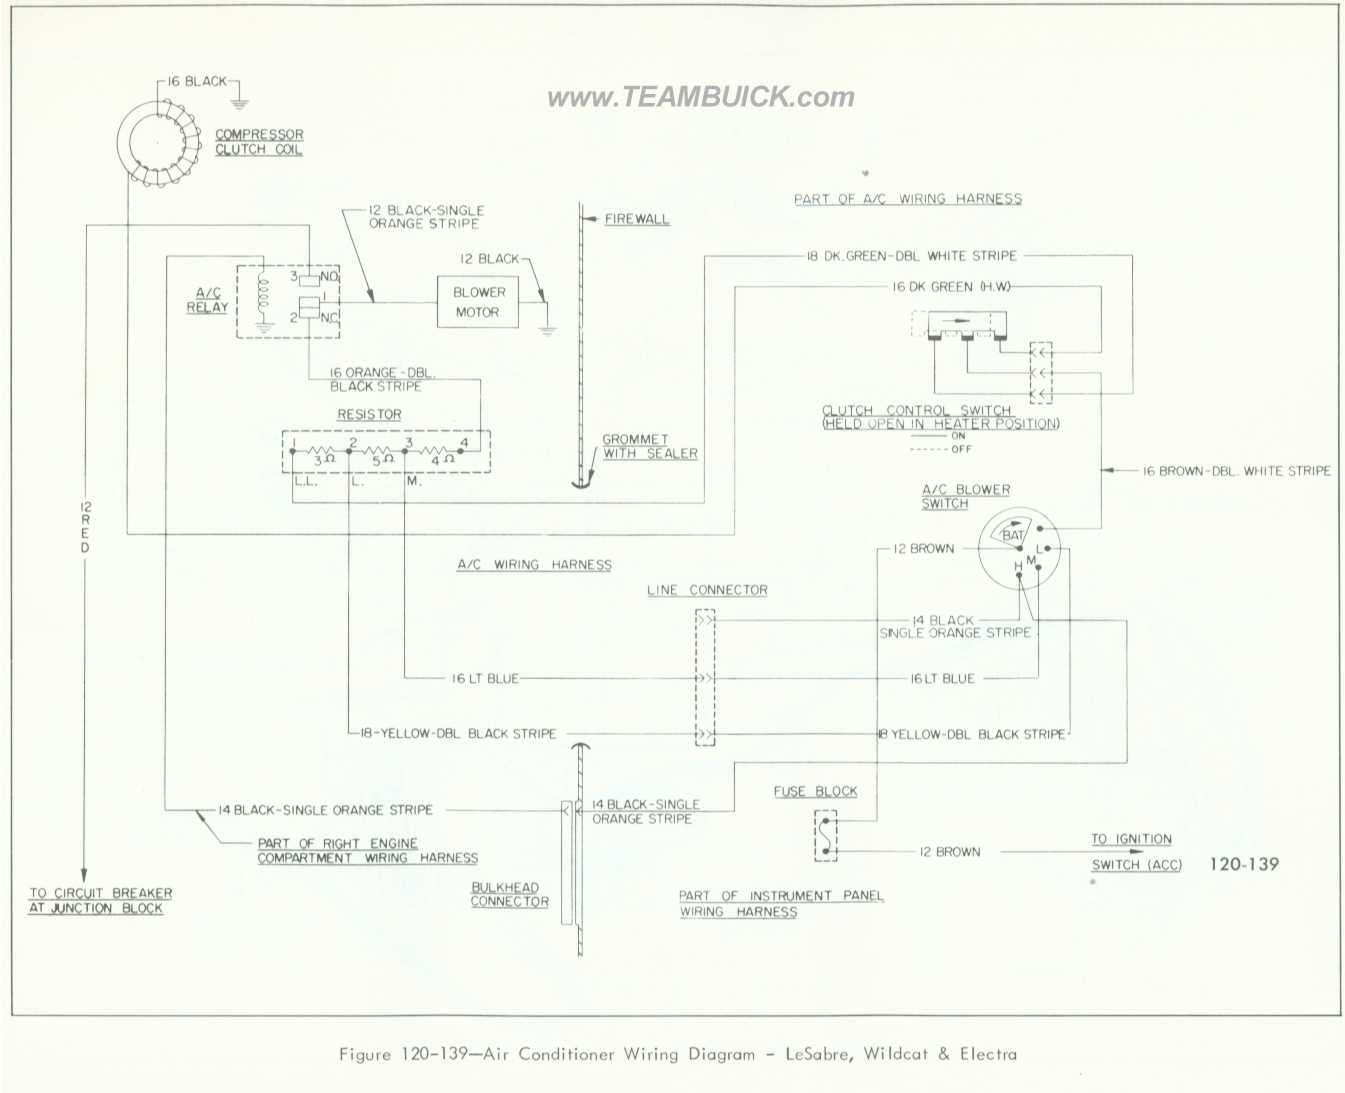 1966 Buick Wildcat Wiring Diagram Reinvent Your 1963 Harness Lesabre Electra Air Conditioner Rh Teambuick Com 225 1964